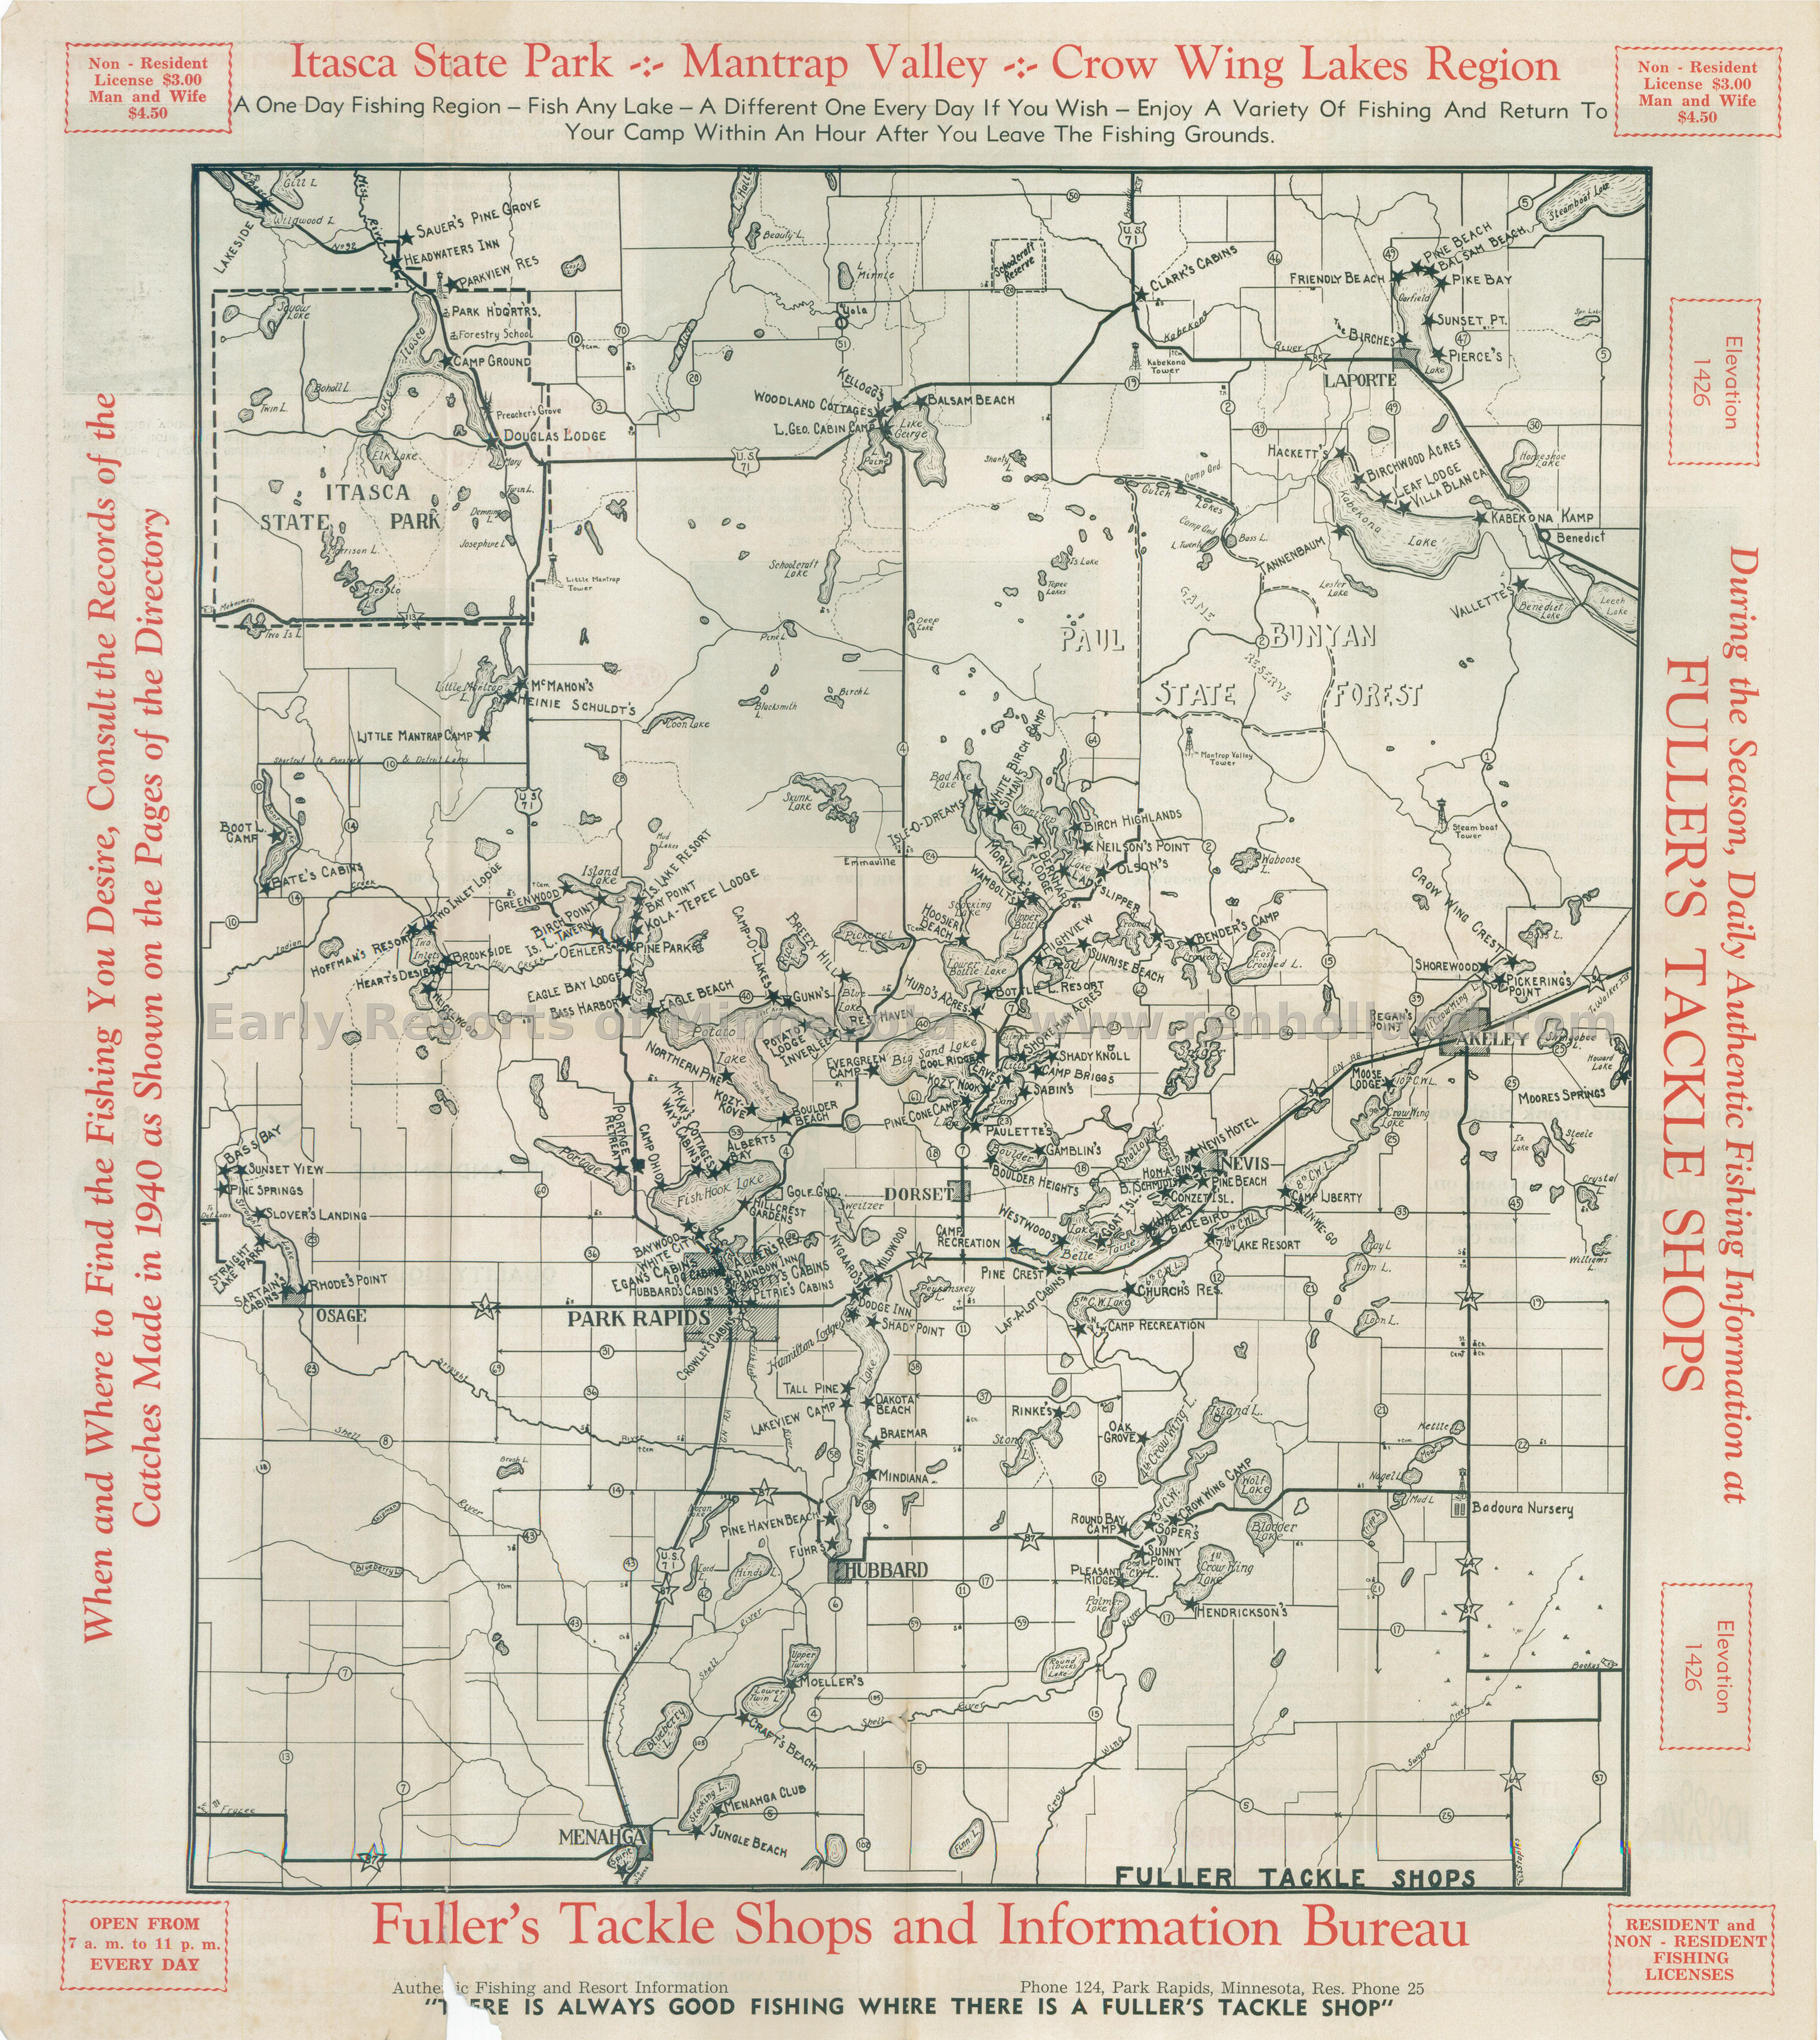 EARLY RESORTS OF MINNESOTA Maps | Ren Holland's Website on map of aquifers in mn, map of highways in mn, map of airports in mn, map of hospitals in mn, map of important cities in mn, map of creeks in mn, map of restaurants in mn, map of forests in mn, map of townships in mn, map of indian reservations in mn, map of school districts in mn, map of farmland in mn, map of agriculture in mn, map of zip codes in mn, map of roads in mn, map of state land in mn, map of railroads in mn, map of waterfalls in mn, map of prairies in mn, map of golf courses in mn,